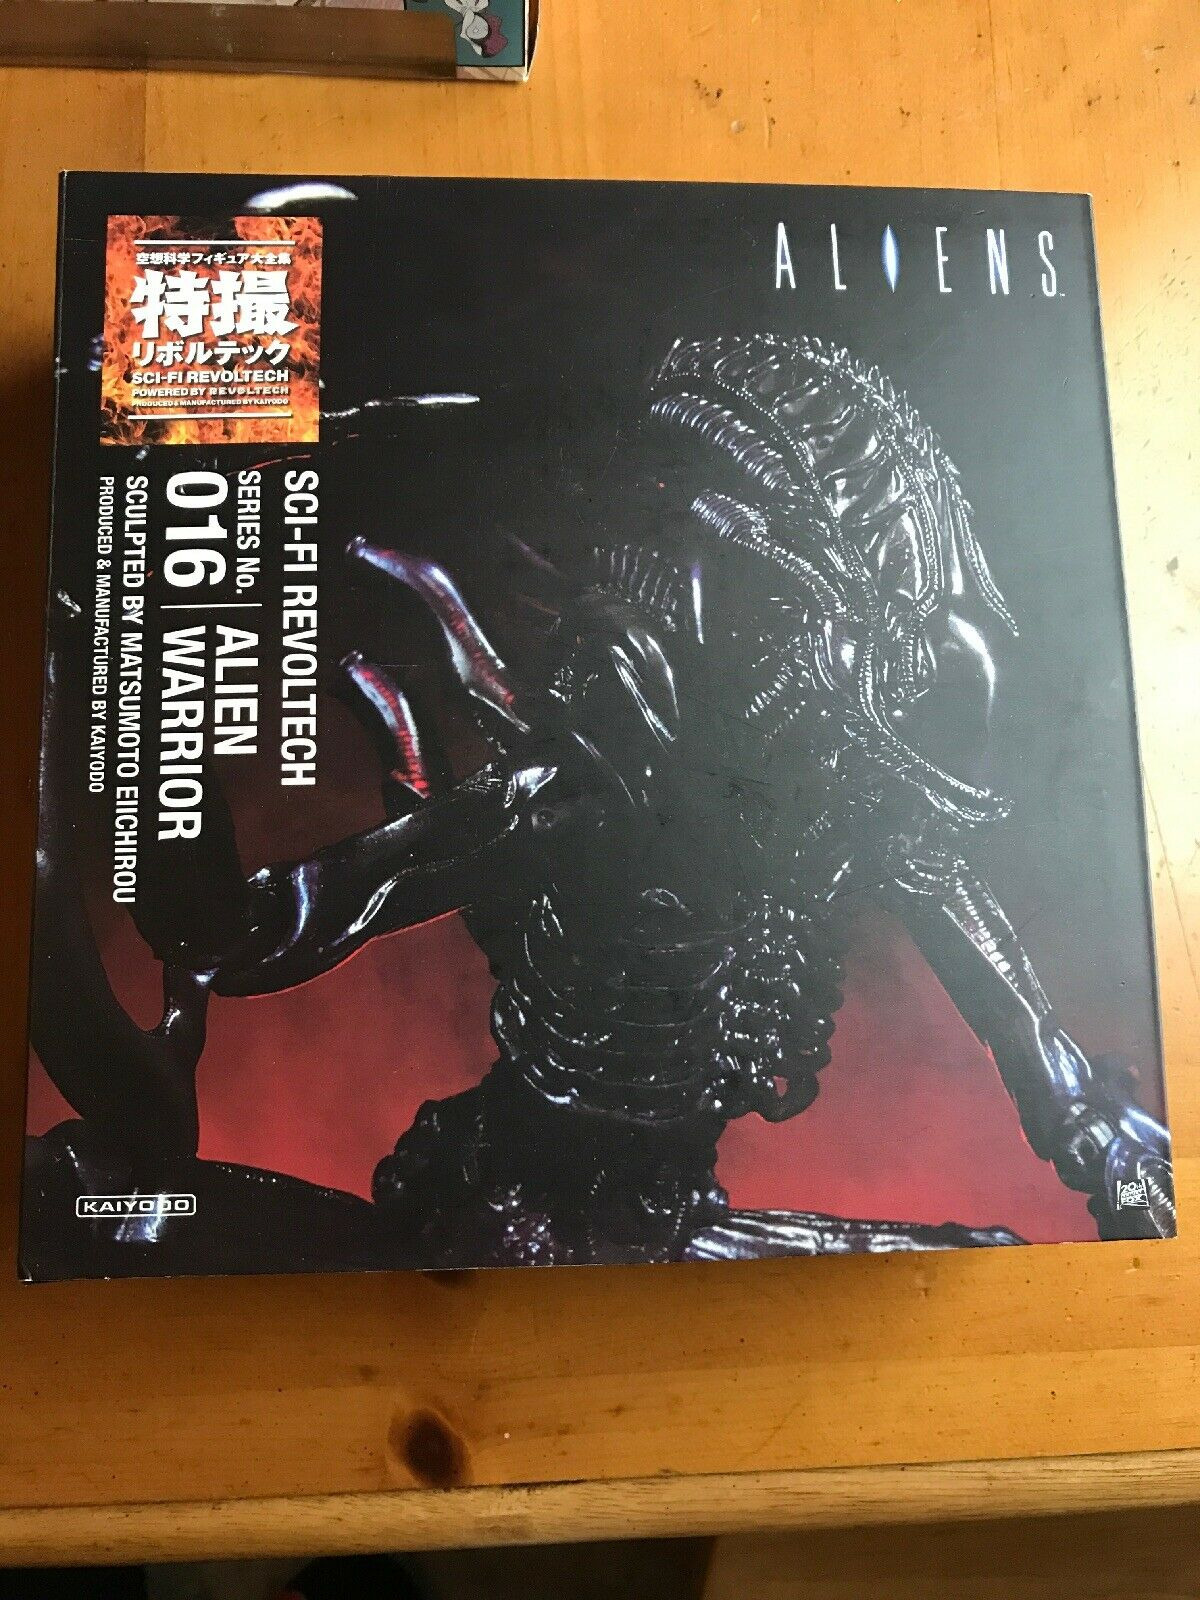 Revoltech Aliens Series No.016 NR-83 Alien Warrior Sci-Fi Kaiyodo